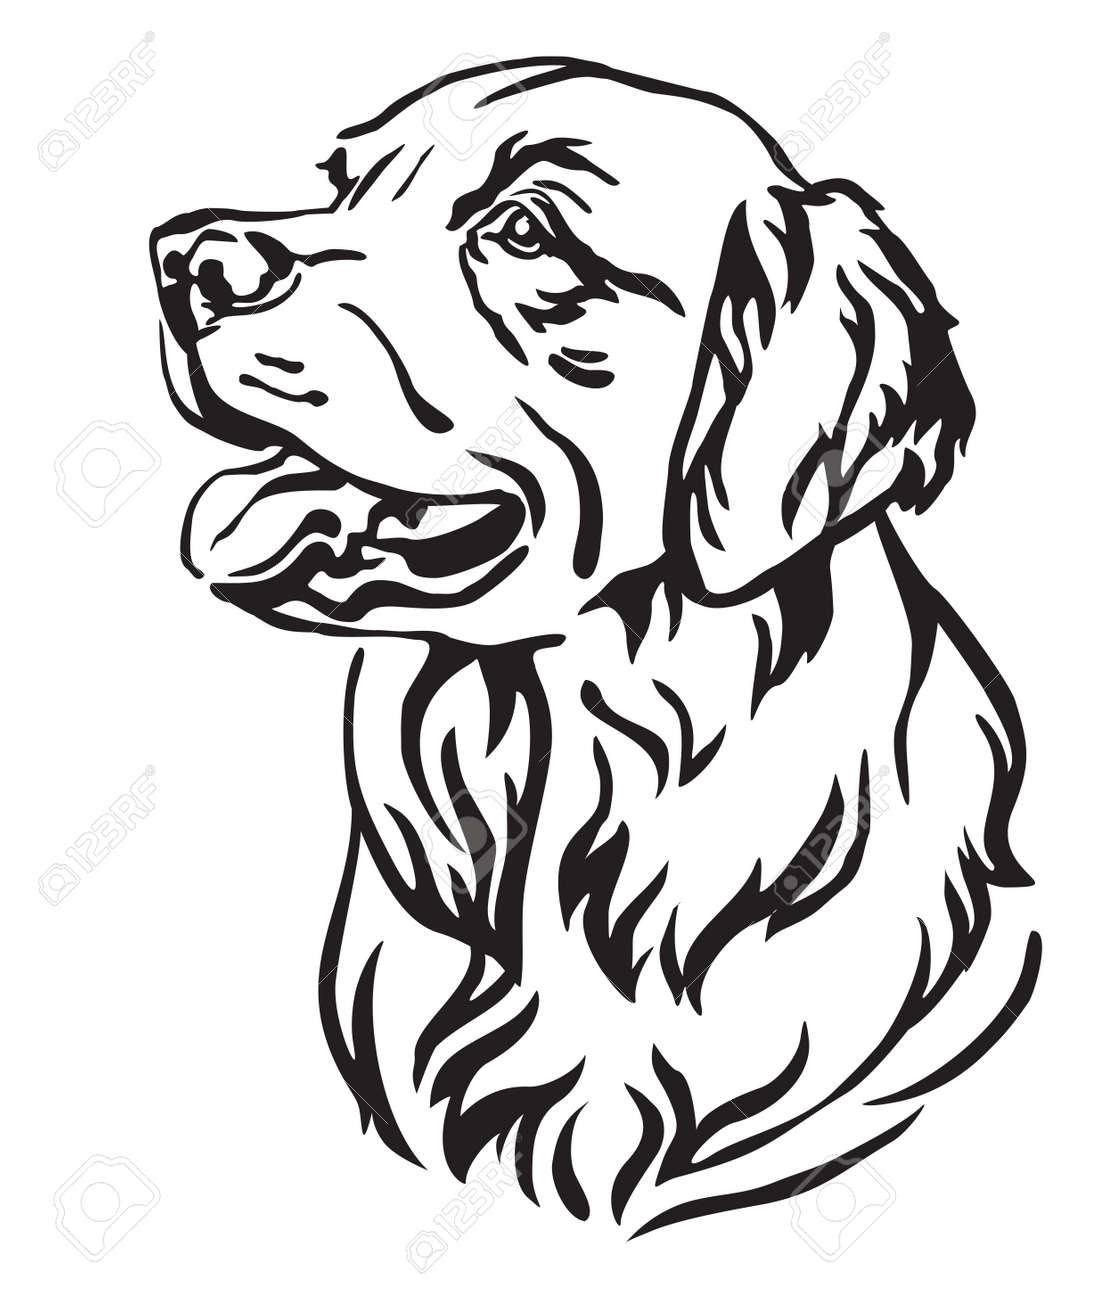 Decorative outline portrait of Dog Golden Retriever looking in profile, vector illustration in black color isolated on white background. Image for design and tattoo. - 119456771